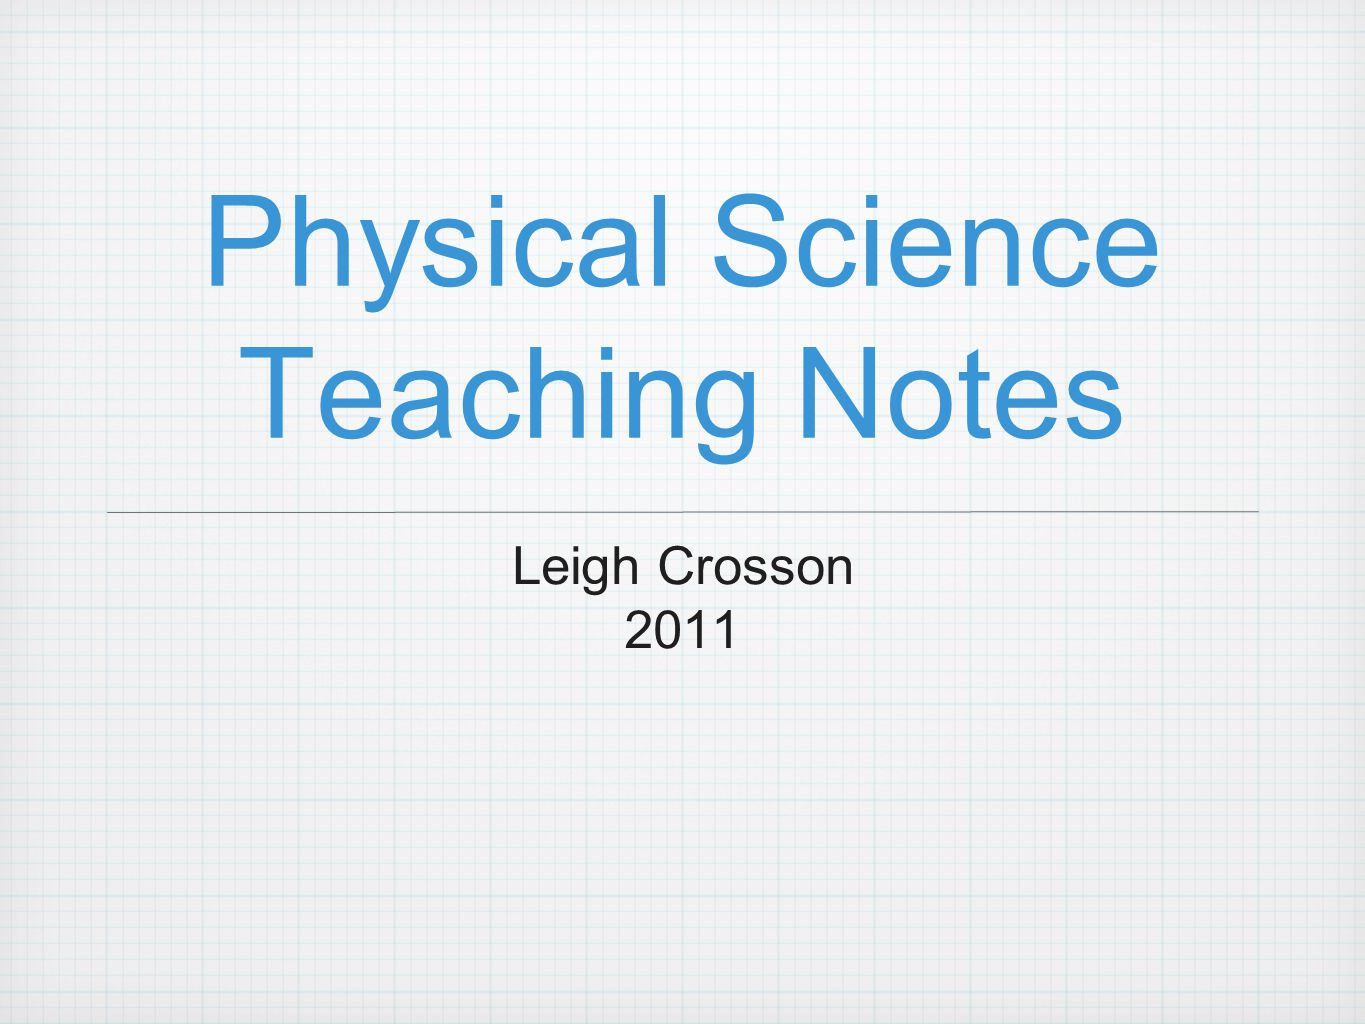 Physical Science Teaching Notes Leigh Crosson 2011